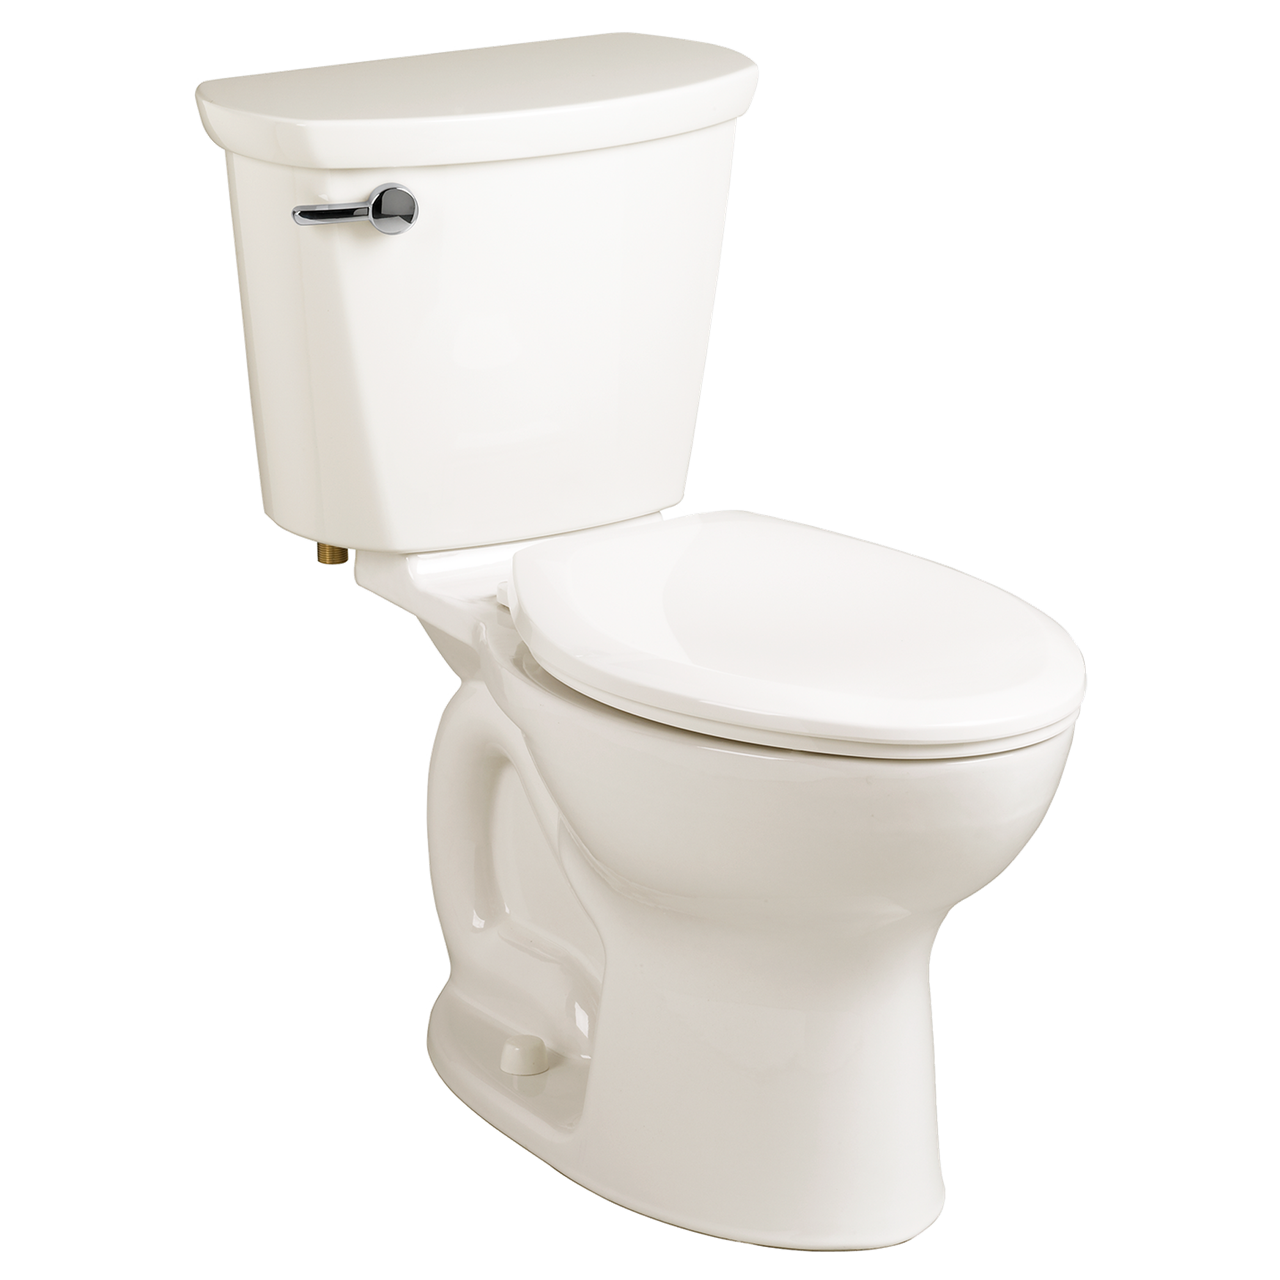 American Standard Toilets - Cadet PRO Elongated 1.28 gpf Toilet ...